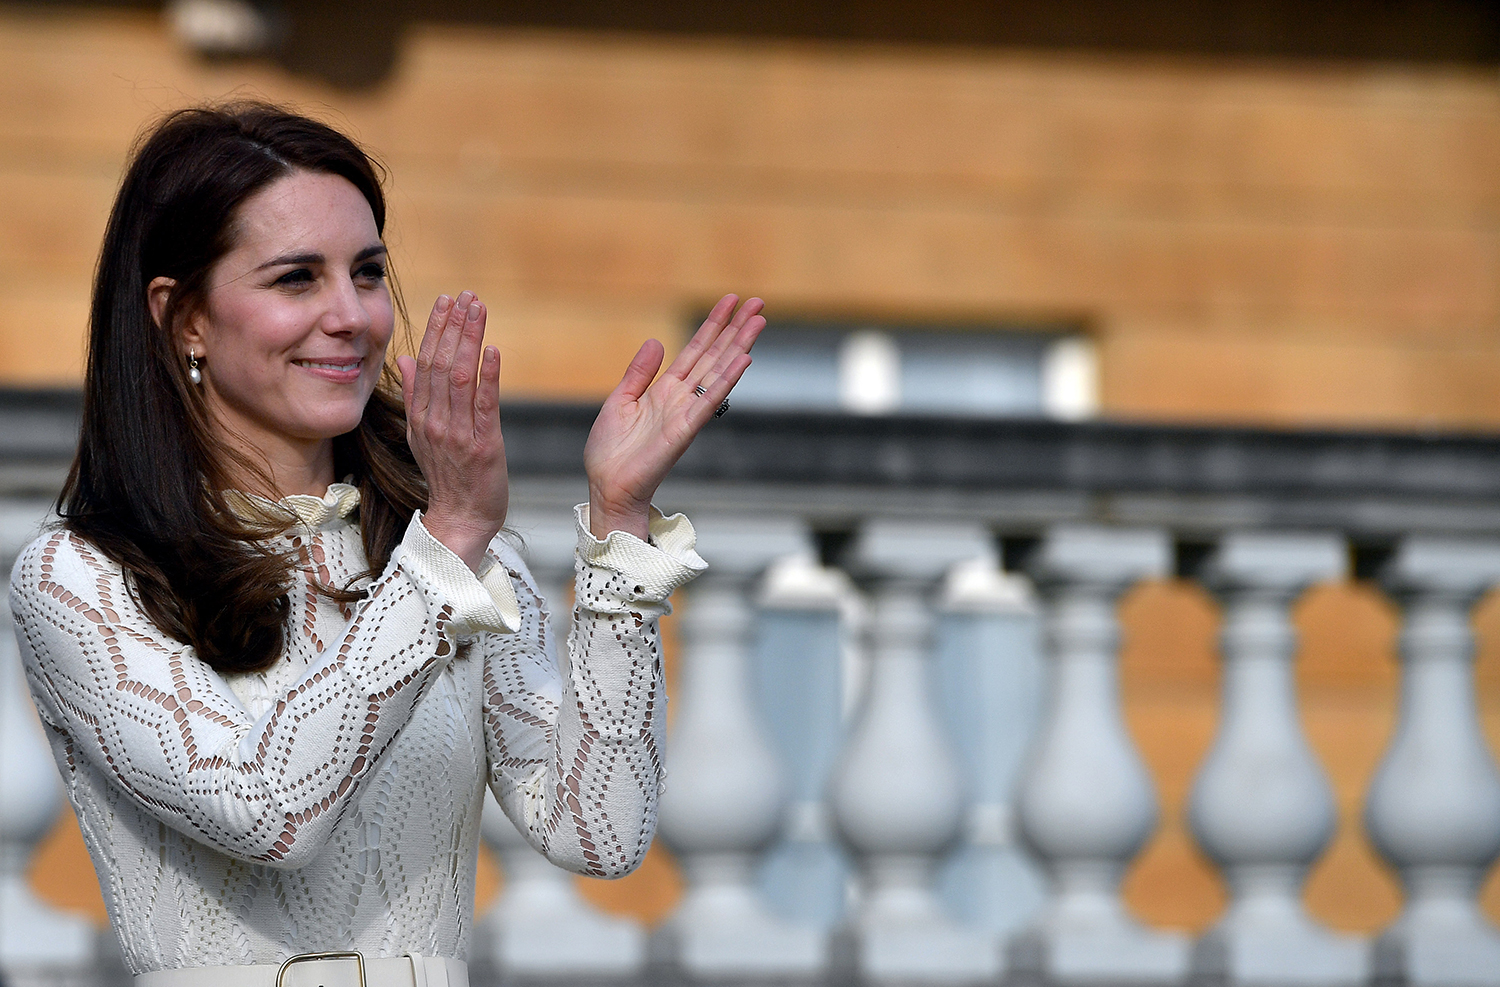 Kate Middleton Clapping at Event